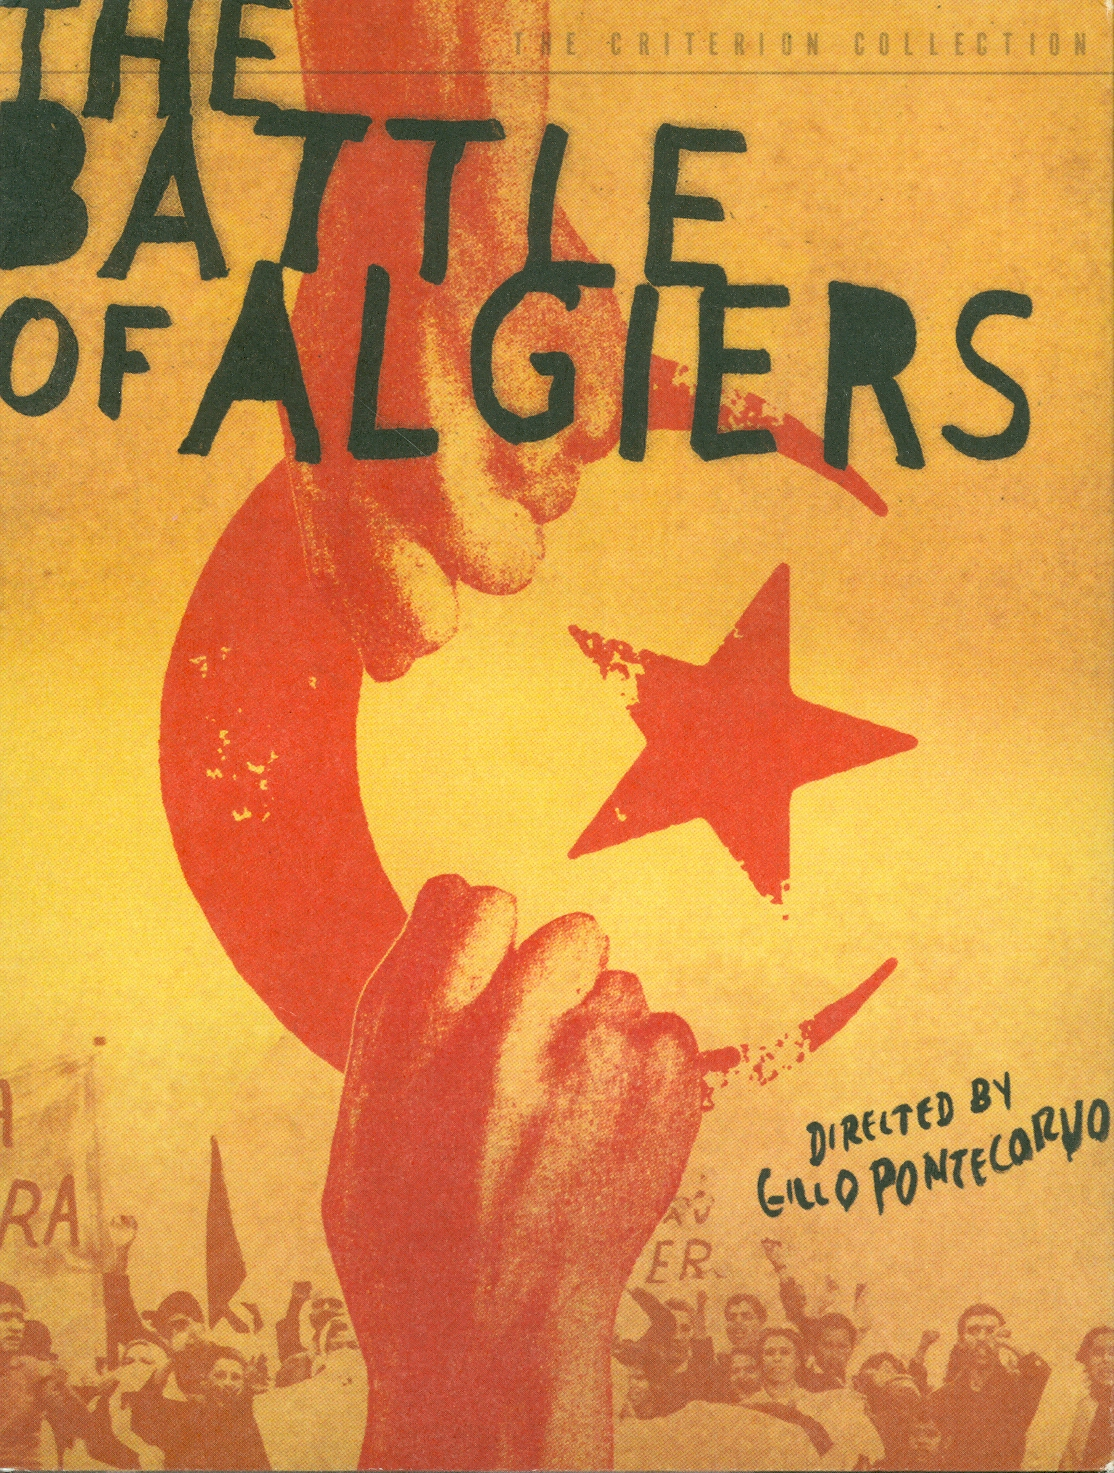 battle of Algiers[videorecording] /directed by Gillo Pontecorvo ; written by Gillo Pontecorvo, Franco Solinas||Criterion collection ;249